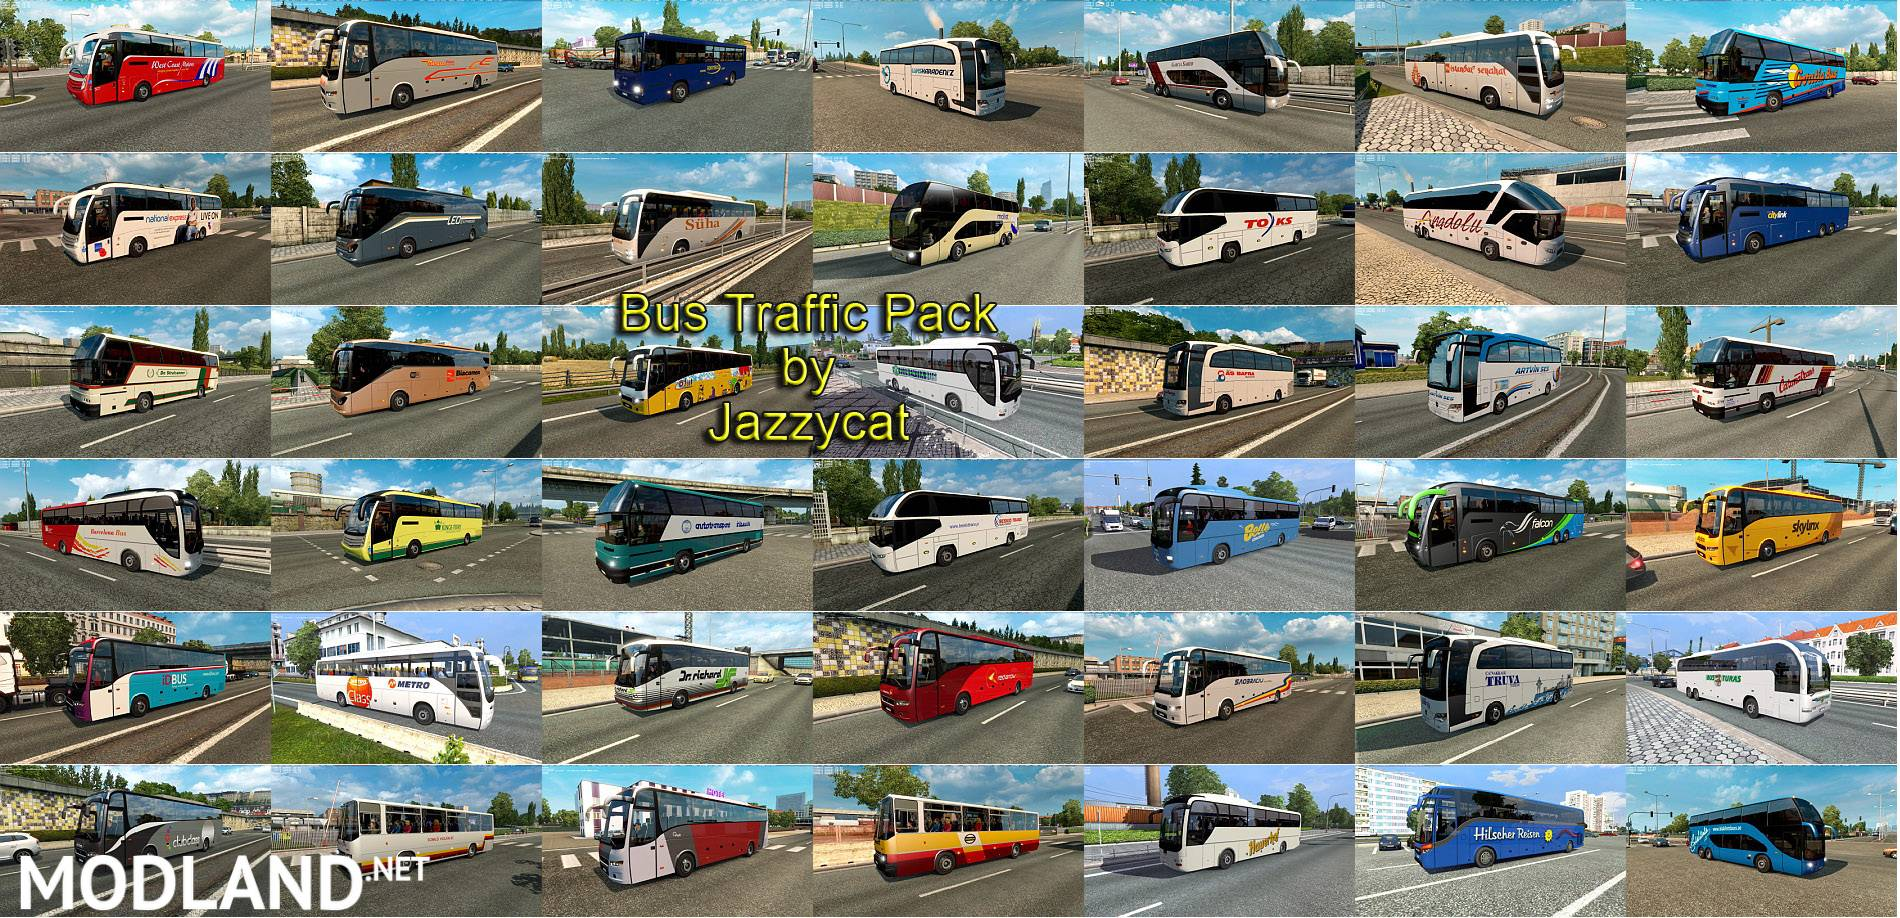 Bus Traffic Pack by Jazzycat v3 9 mod for ETS 2